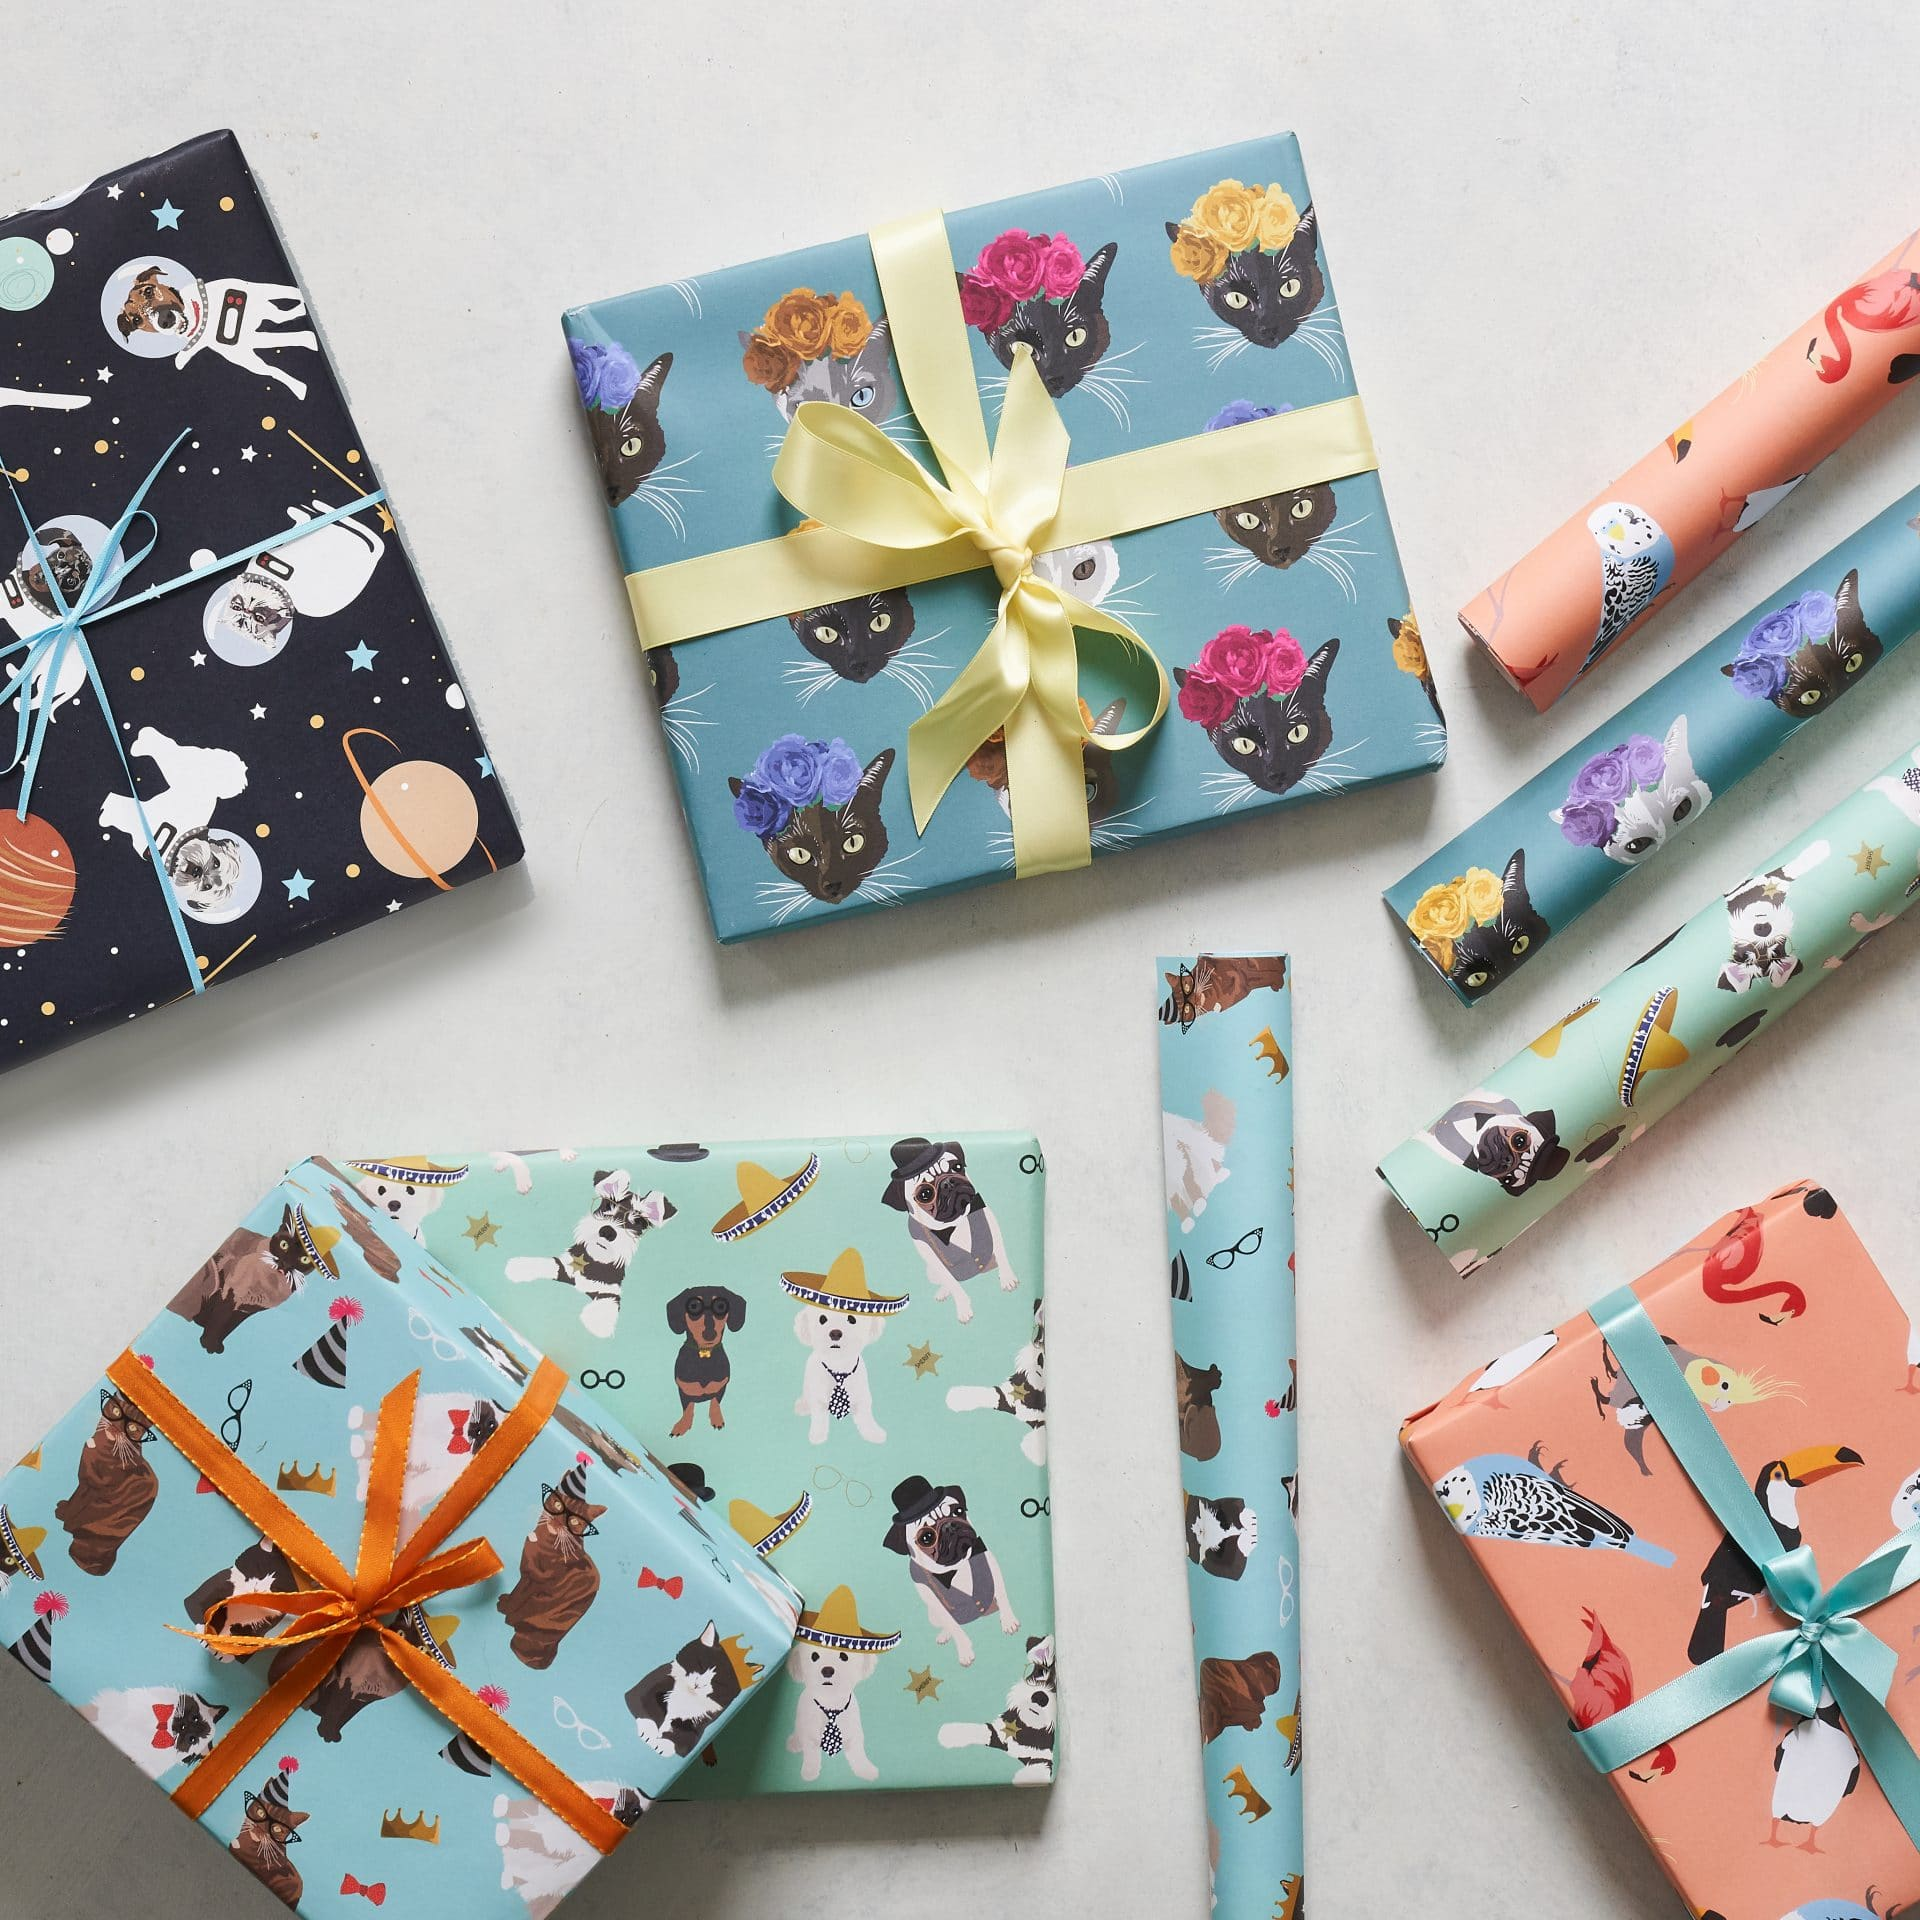 Lorna Syson wrapping paper